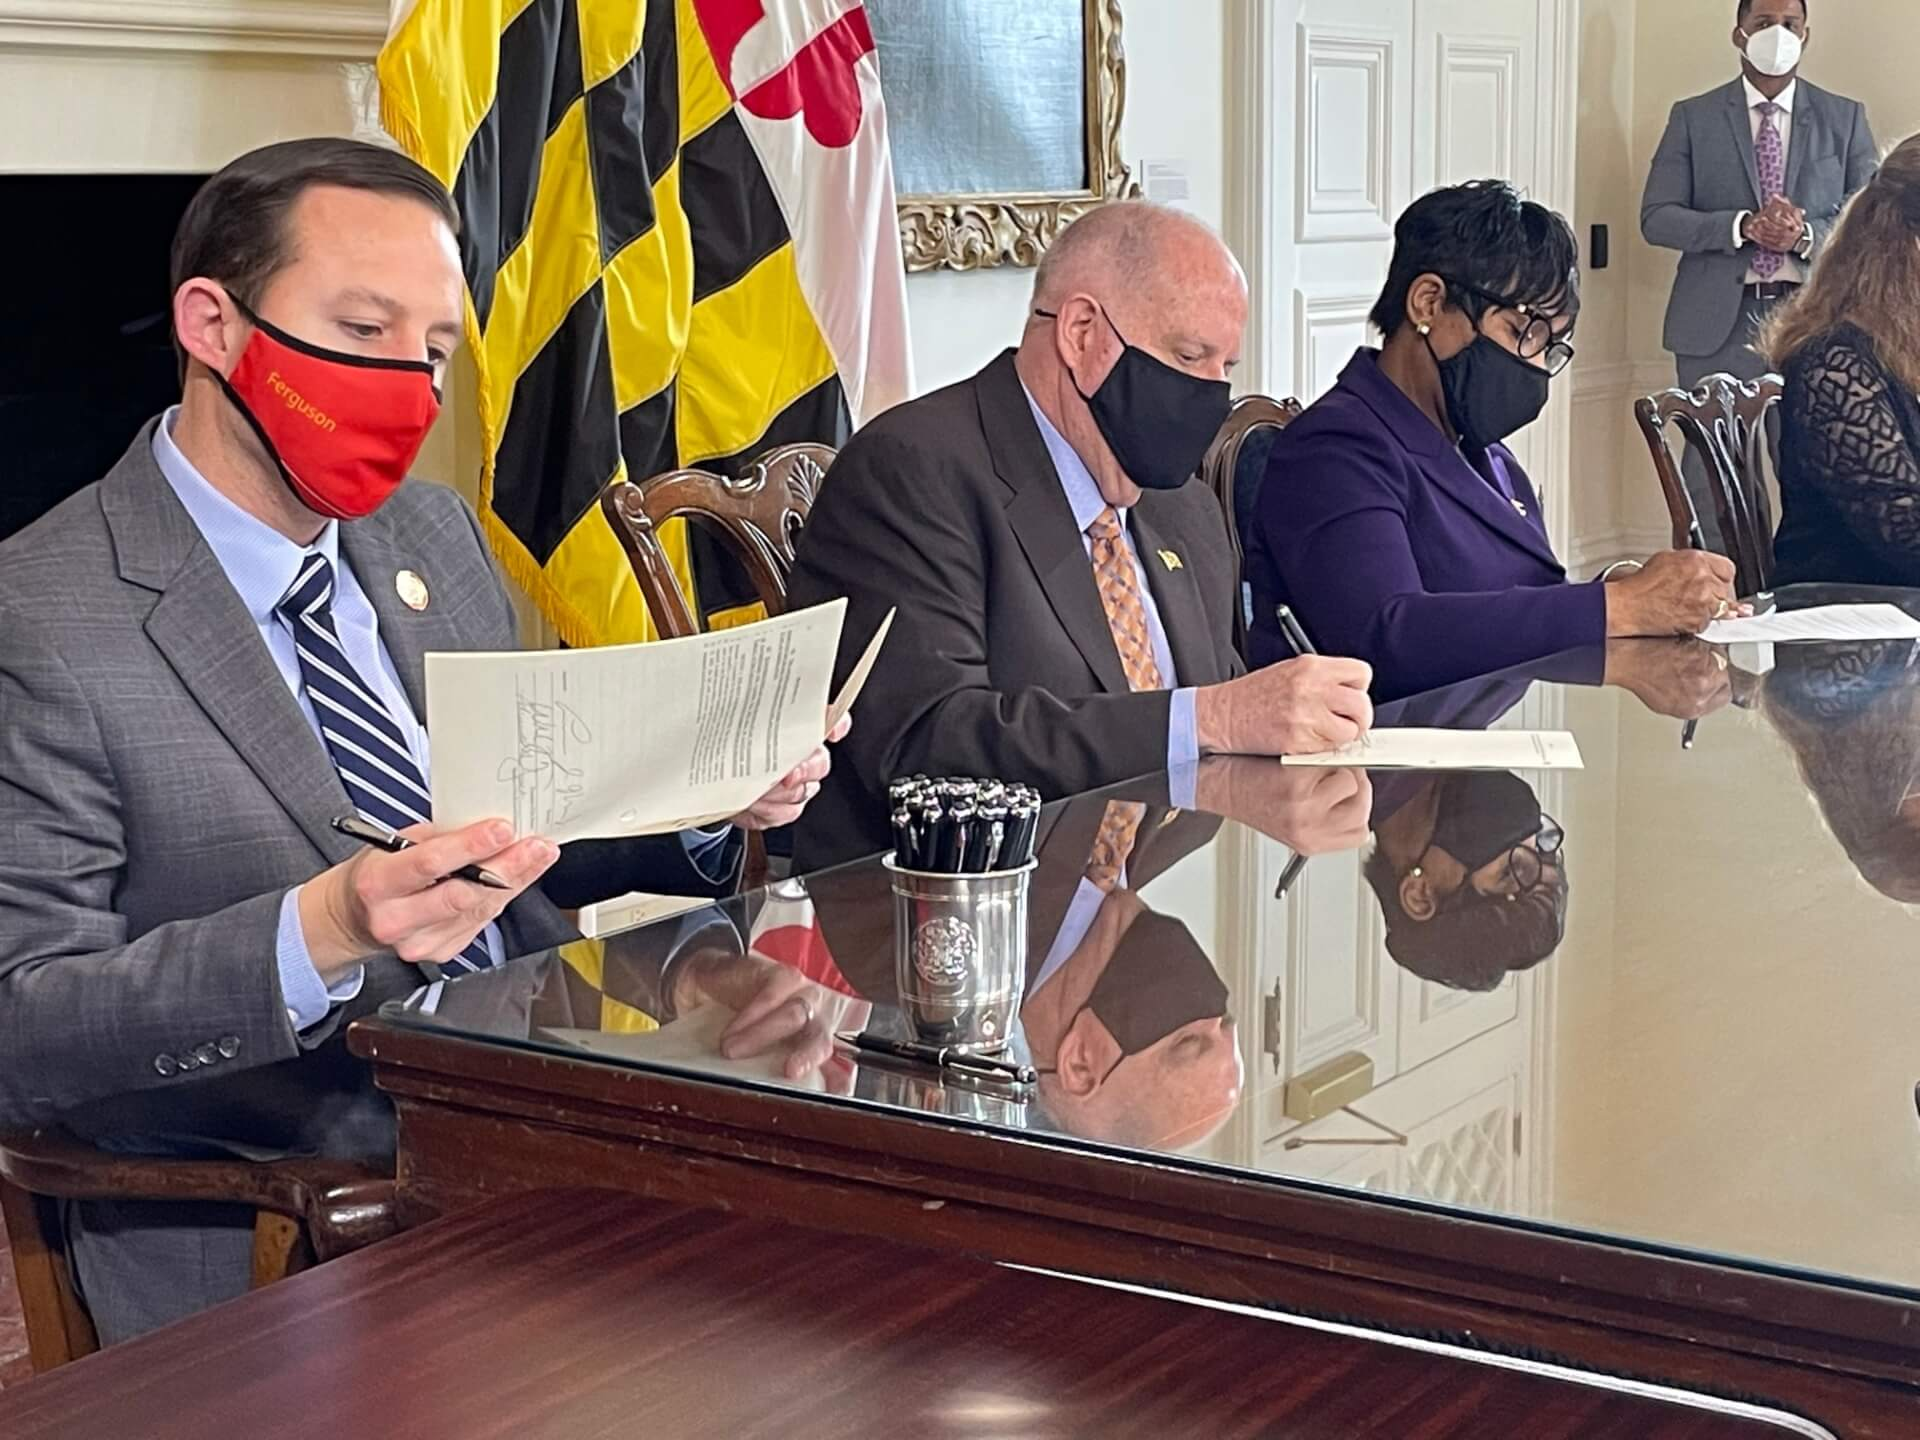 Several High-Profile Bills Among Measures Signed by Governor – Maryland Matters